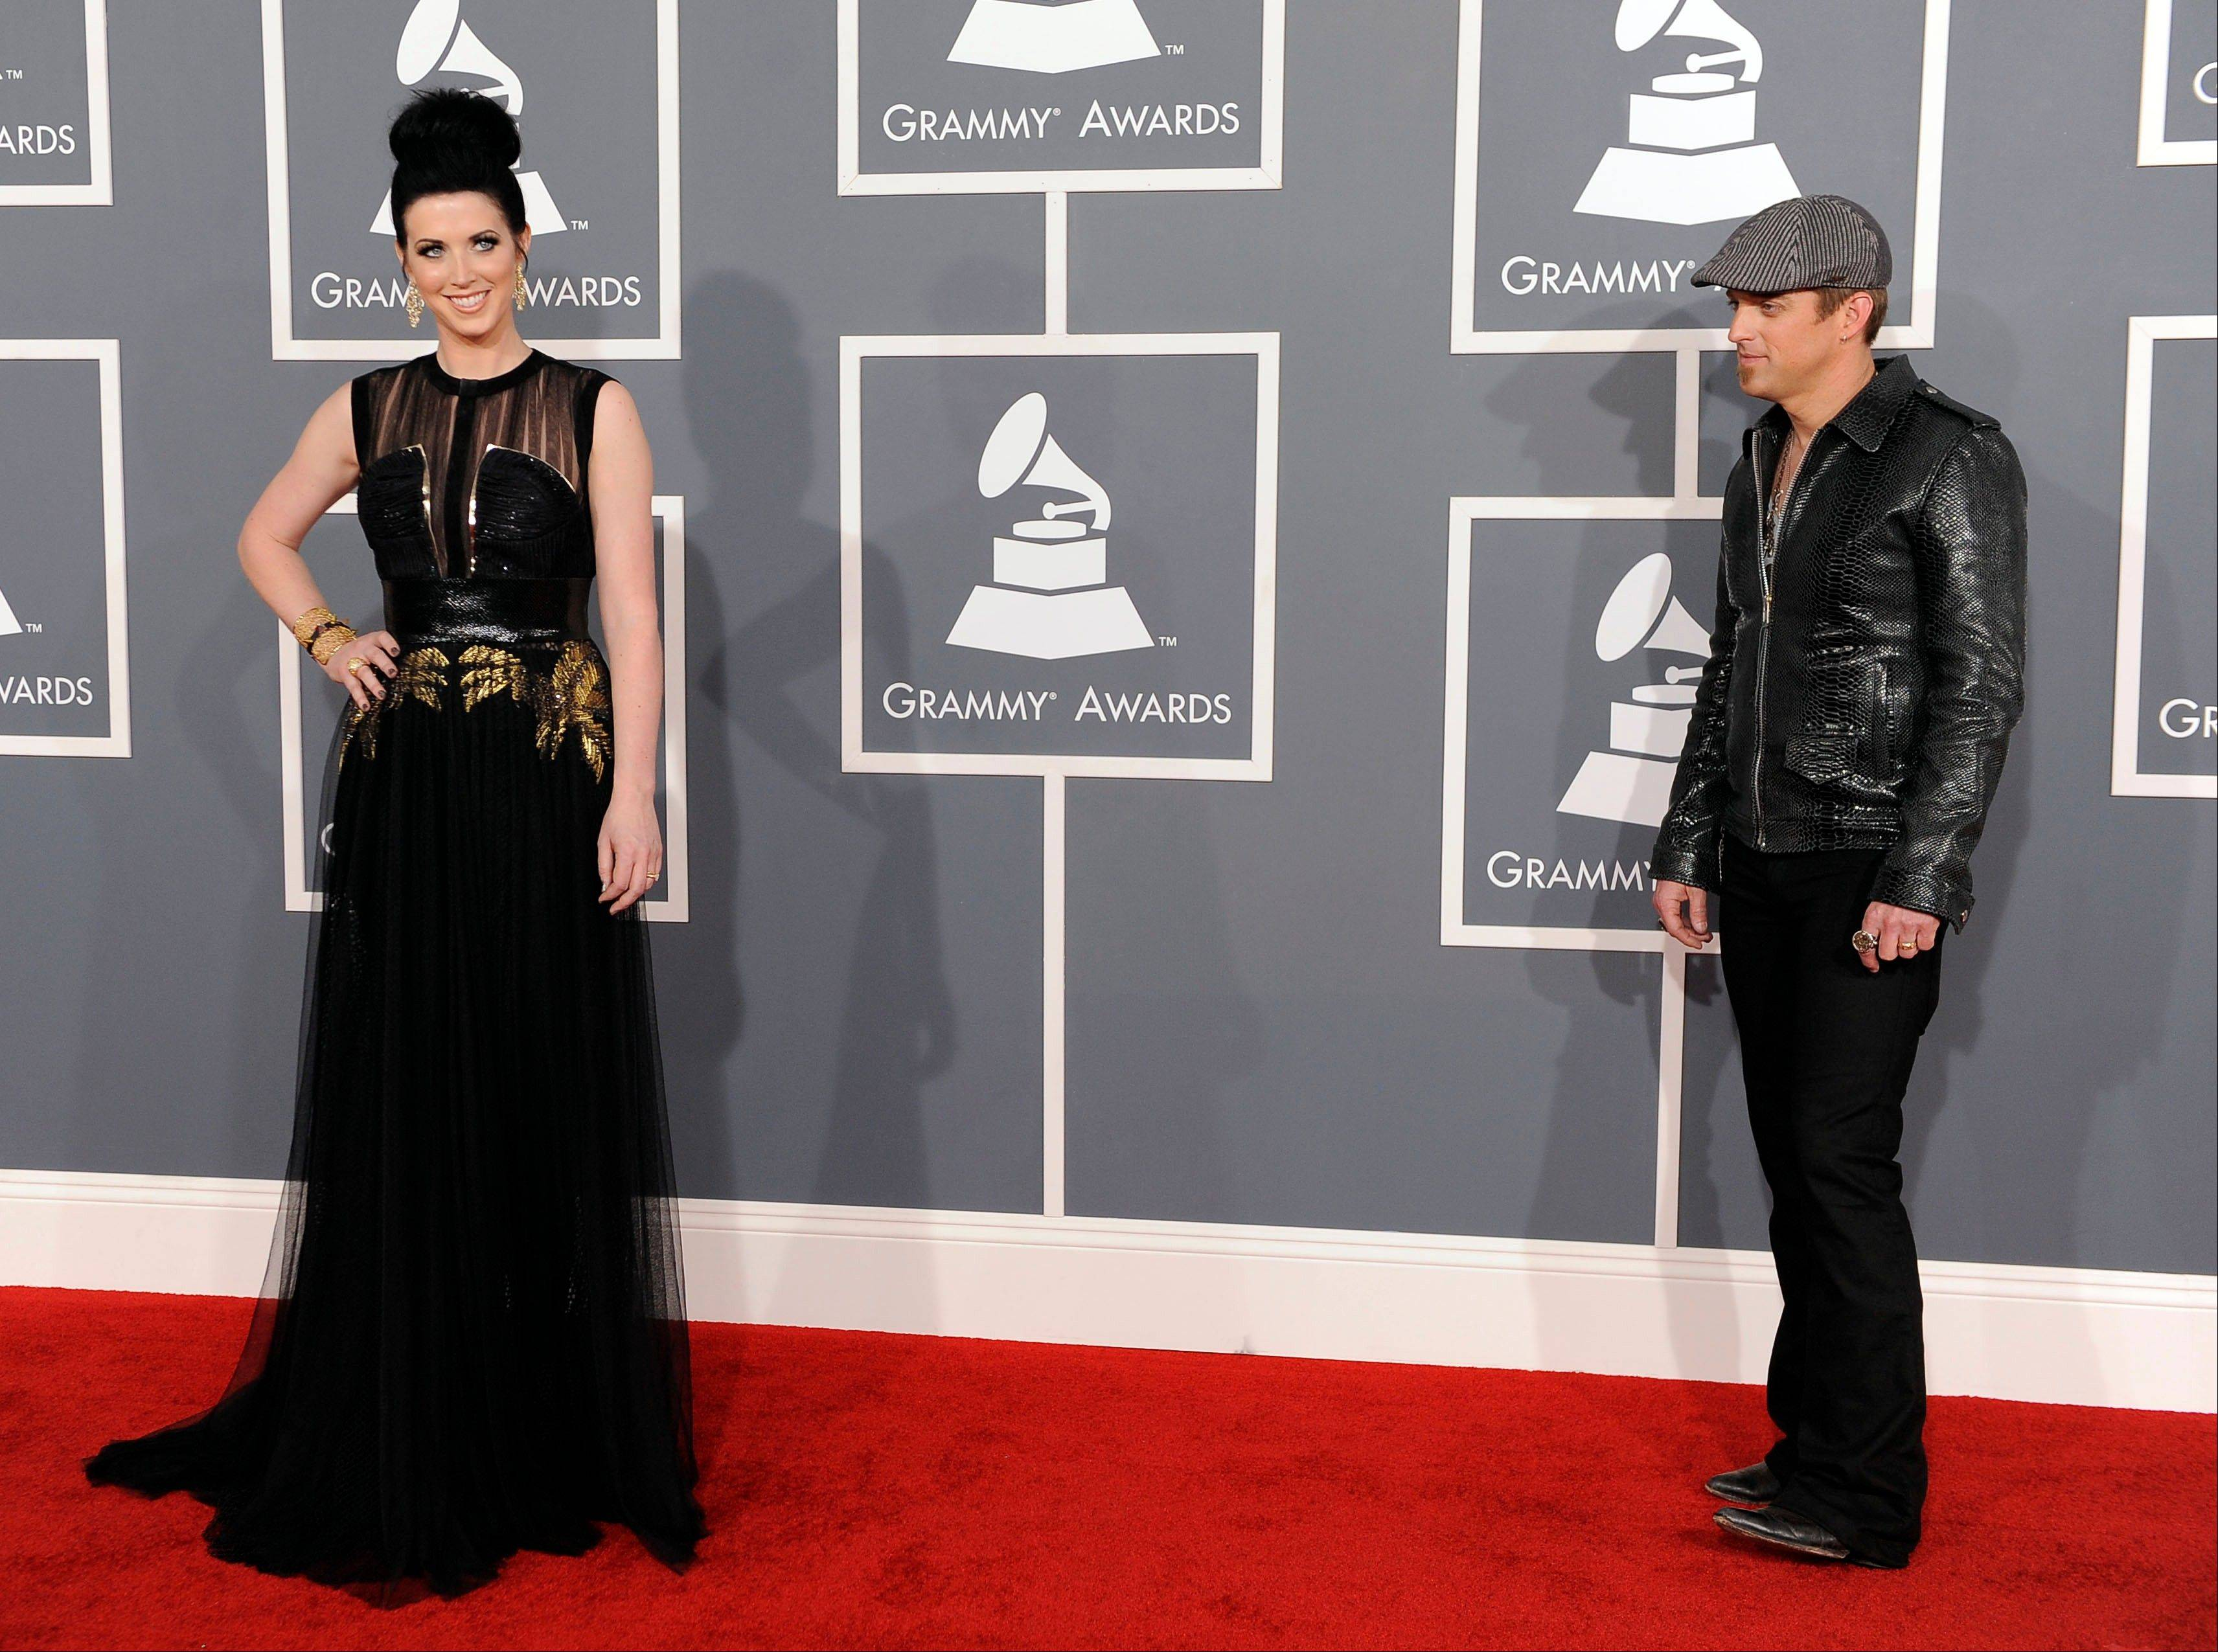 Shawna Thompson, left, and Keifer Thompson of Thompson Square arrive Sunday at the 54th annual Grammy Awards in Los Angeles.